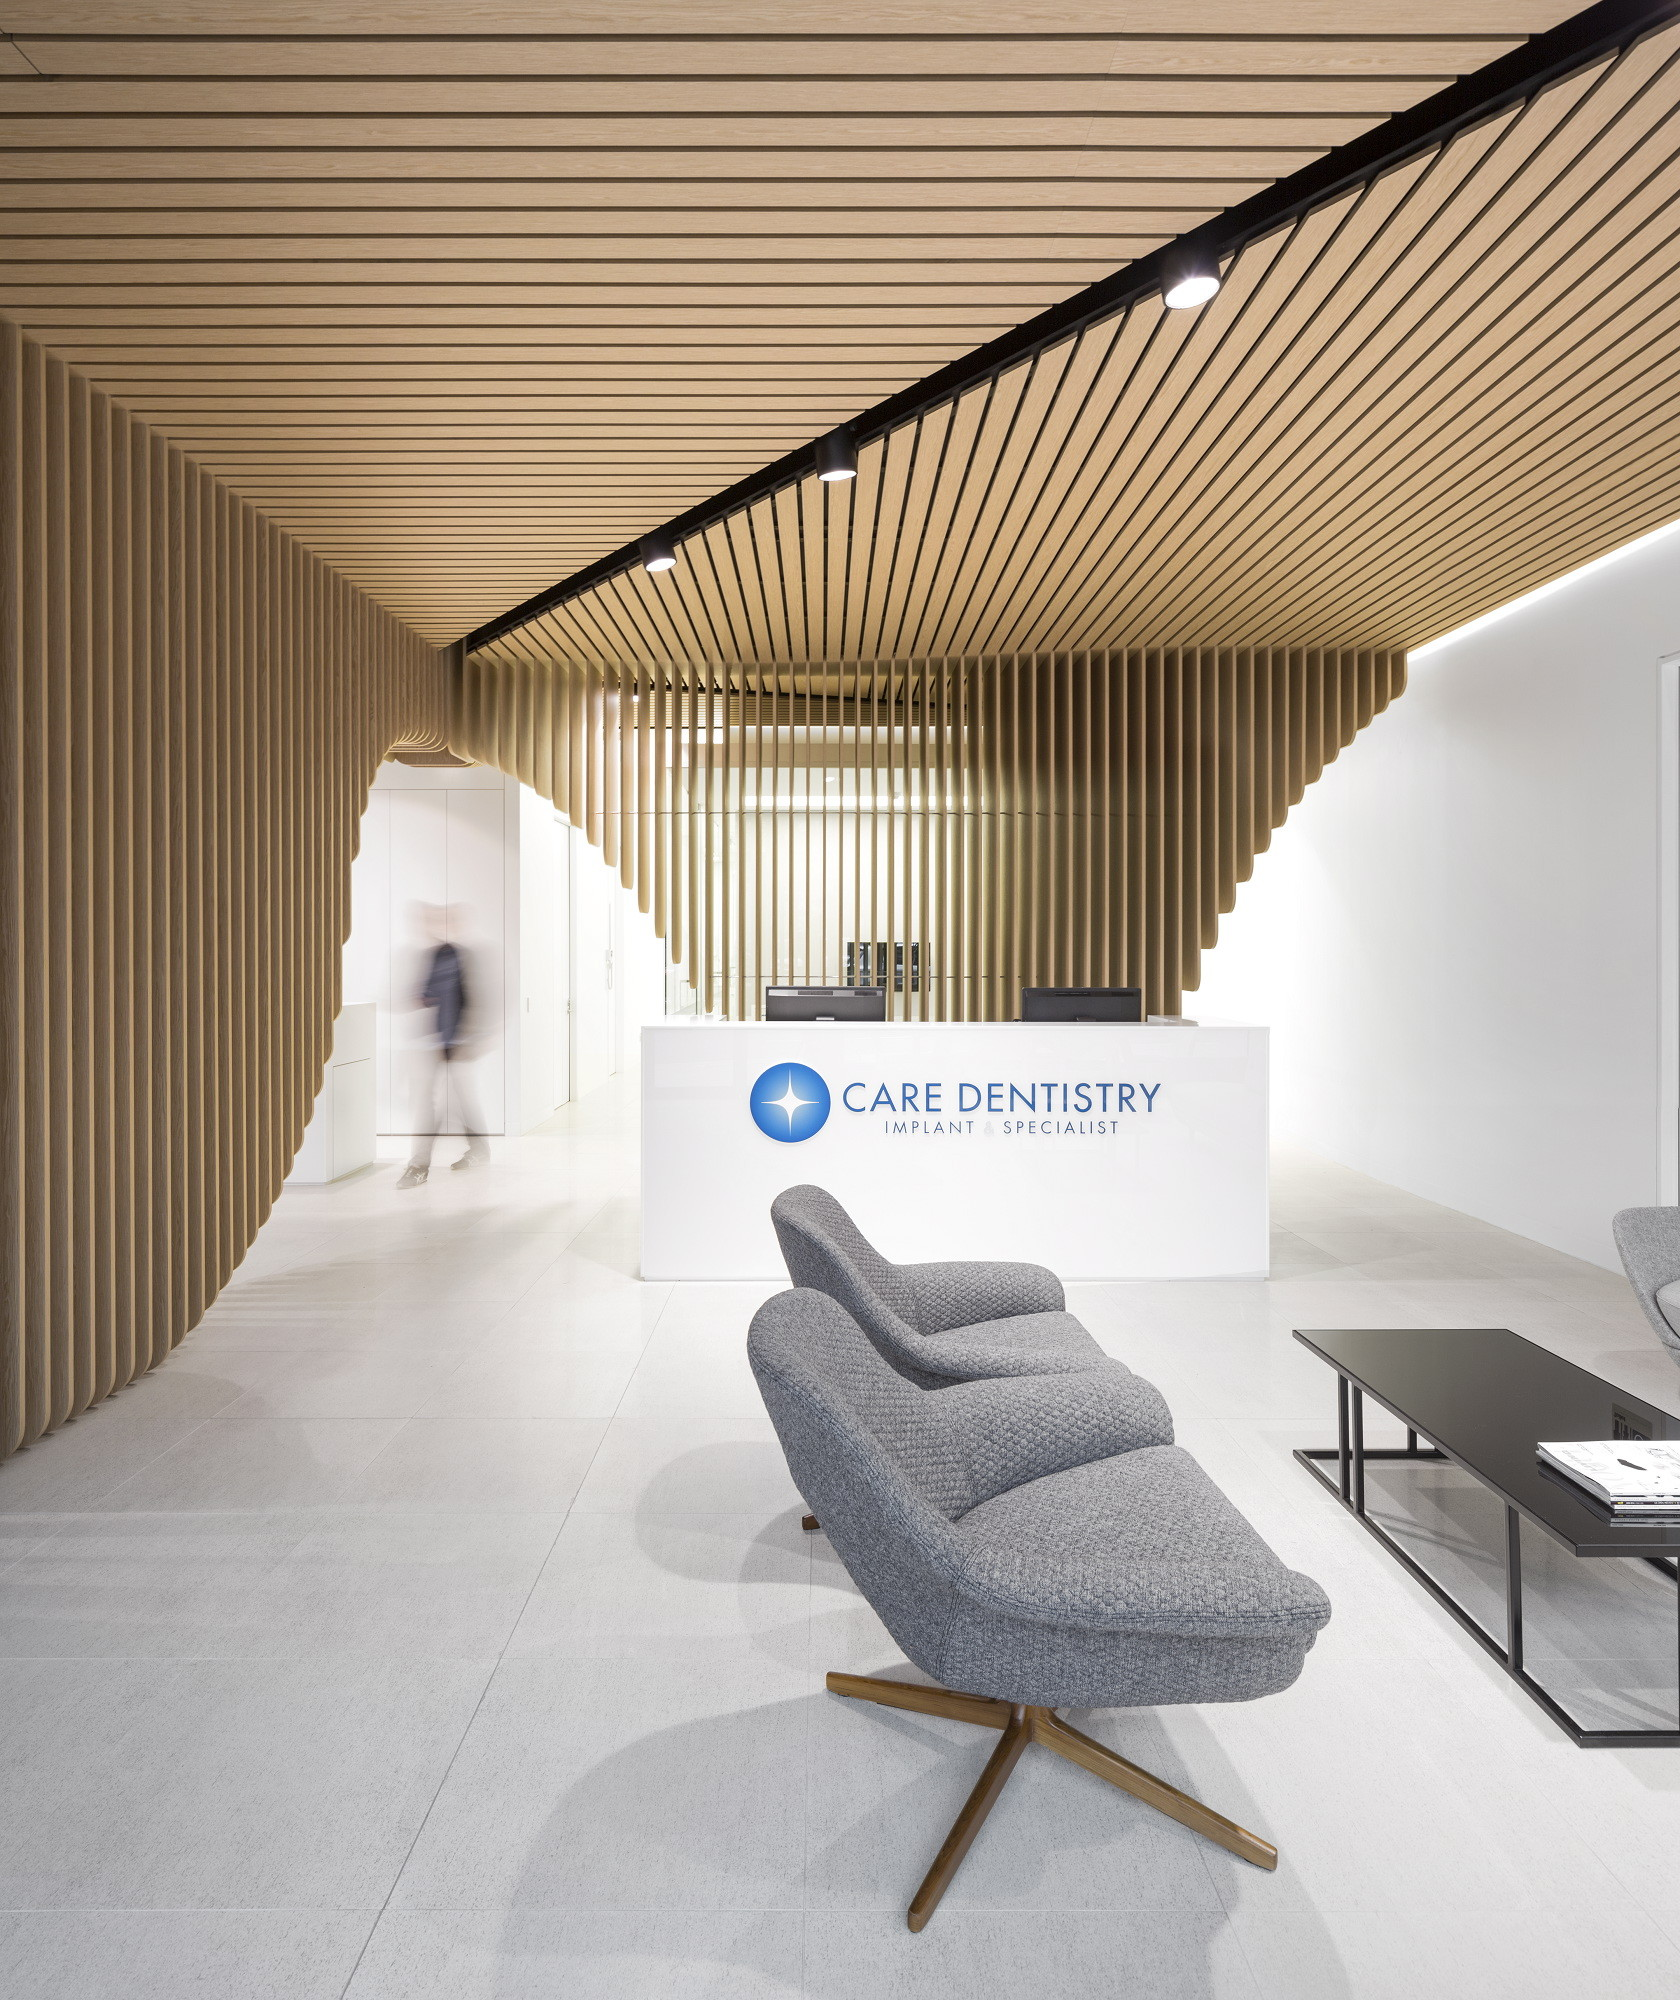 office interior design sydney. Care Implant Dentistry Pedra Silva Ts Archdaily. Salon Interior Design Home Office Sydney